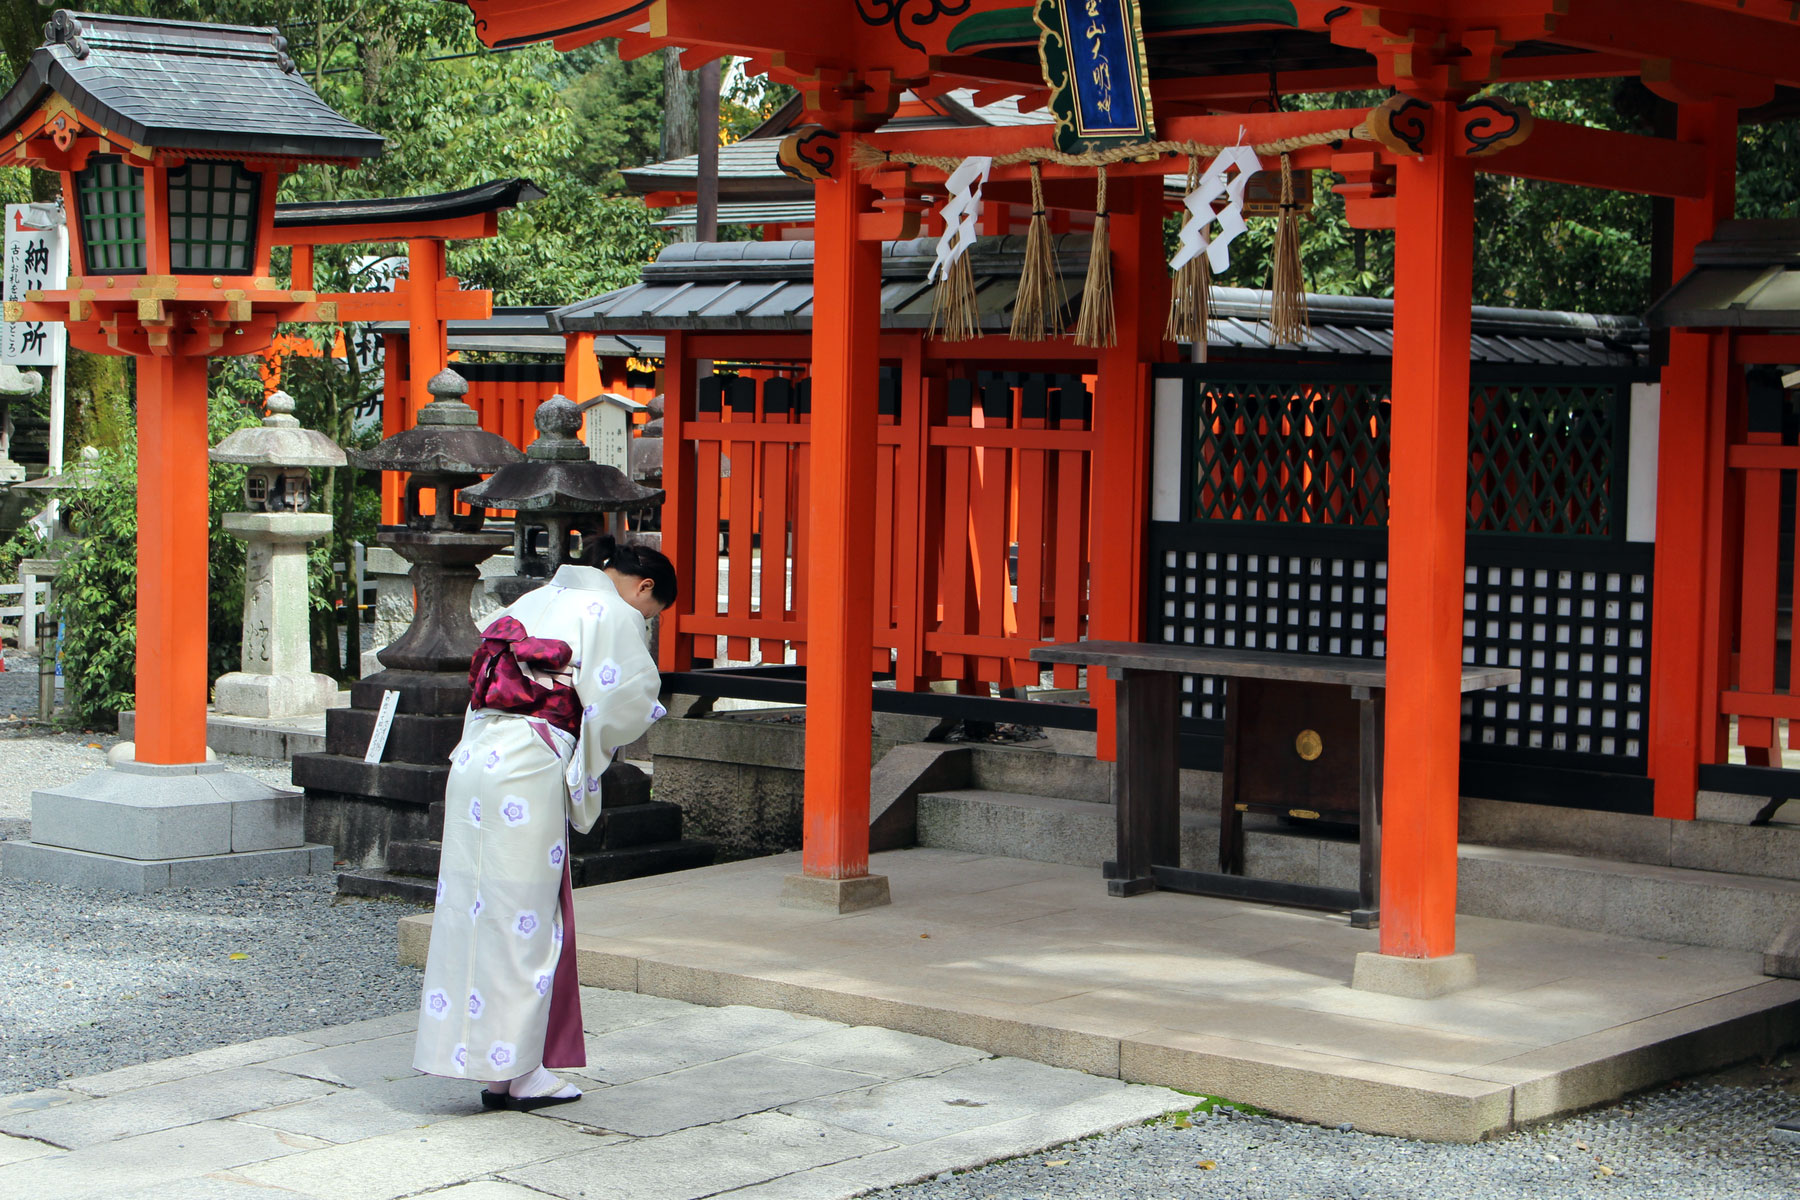 Woman in a kimono bowing in prayer at Fushimi Inari Shrine in Kyoto, Japan